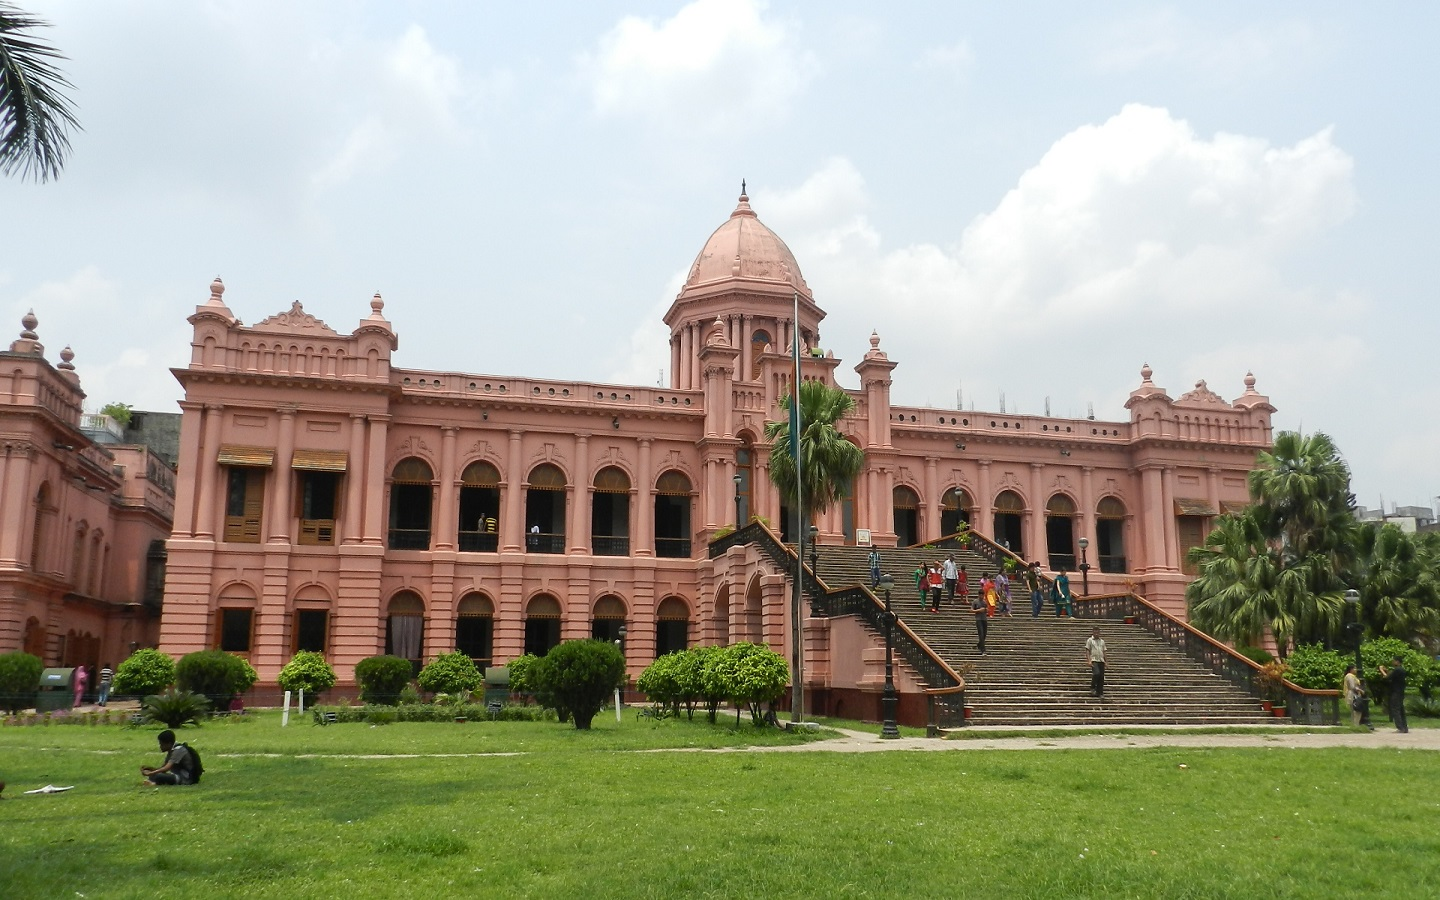 If you're a Dhaka dweller, this palace should be on the top of your list of places to visit on the International Museum Day